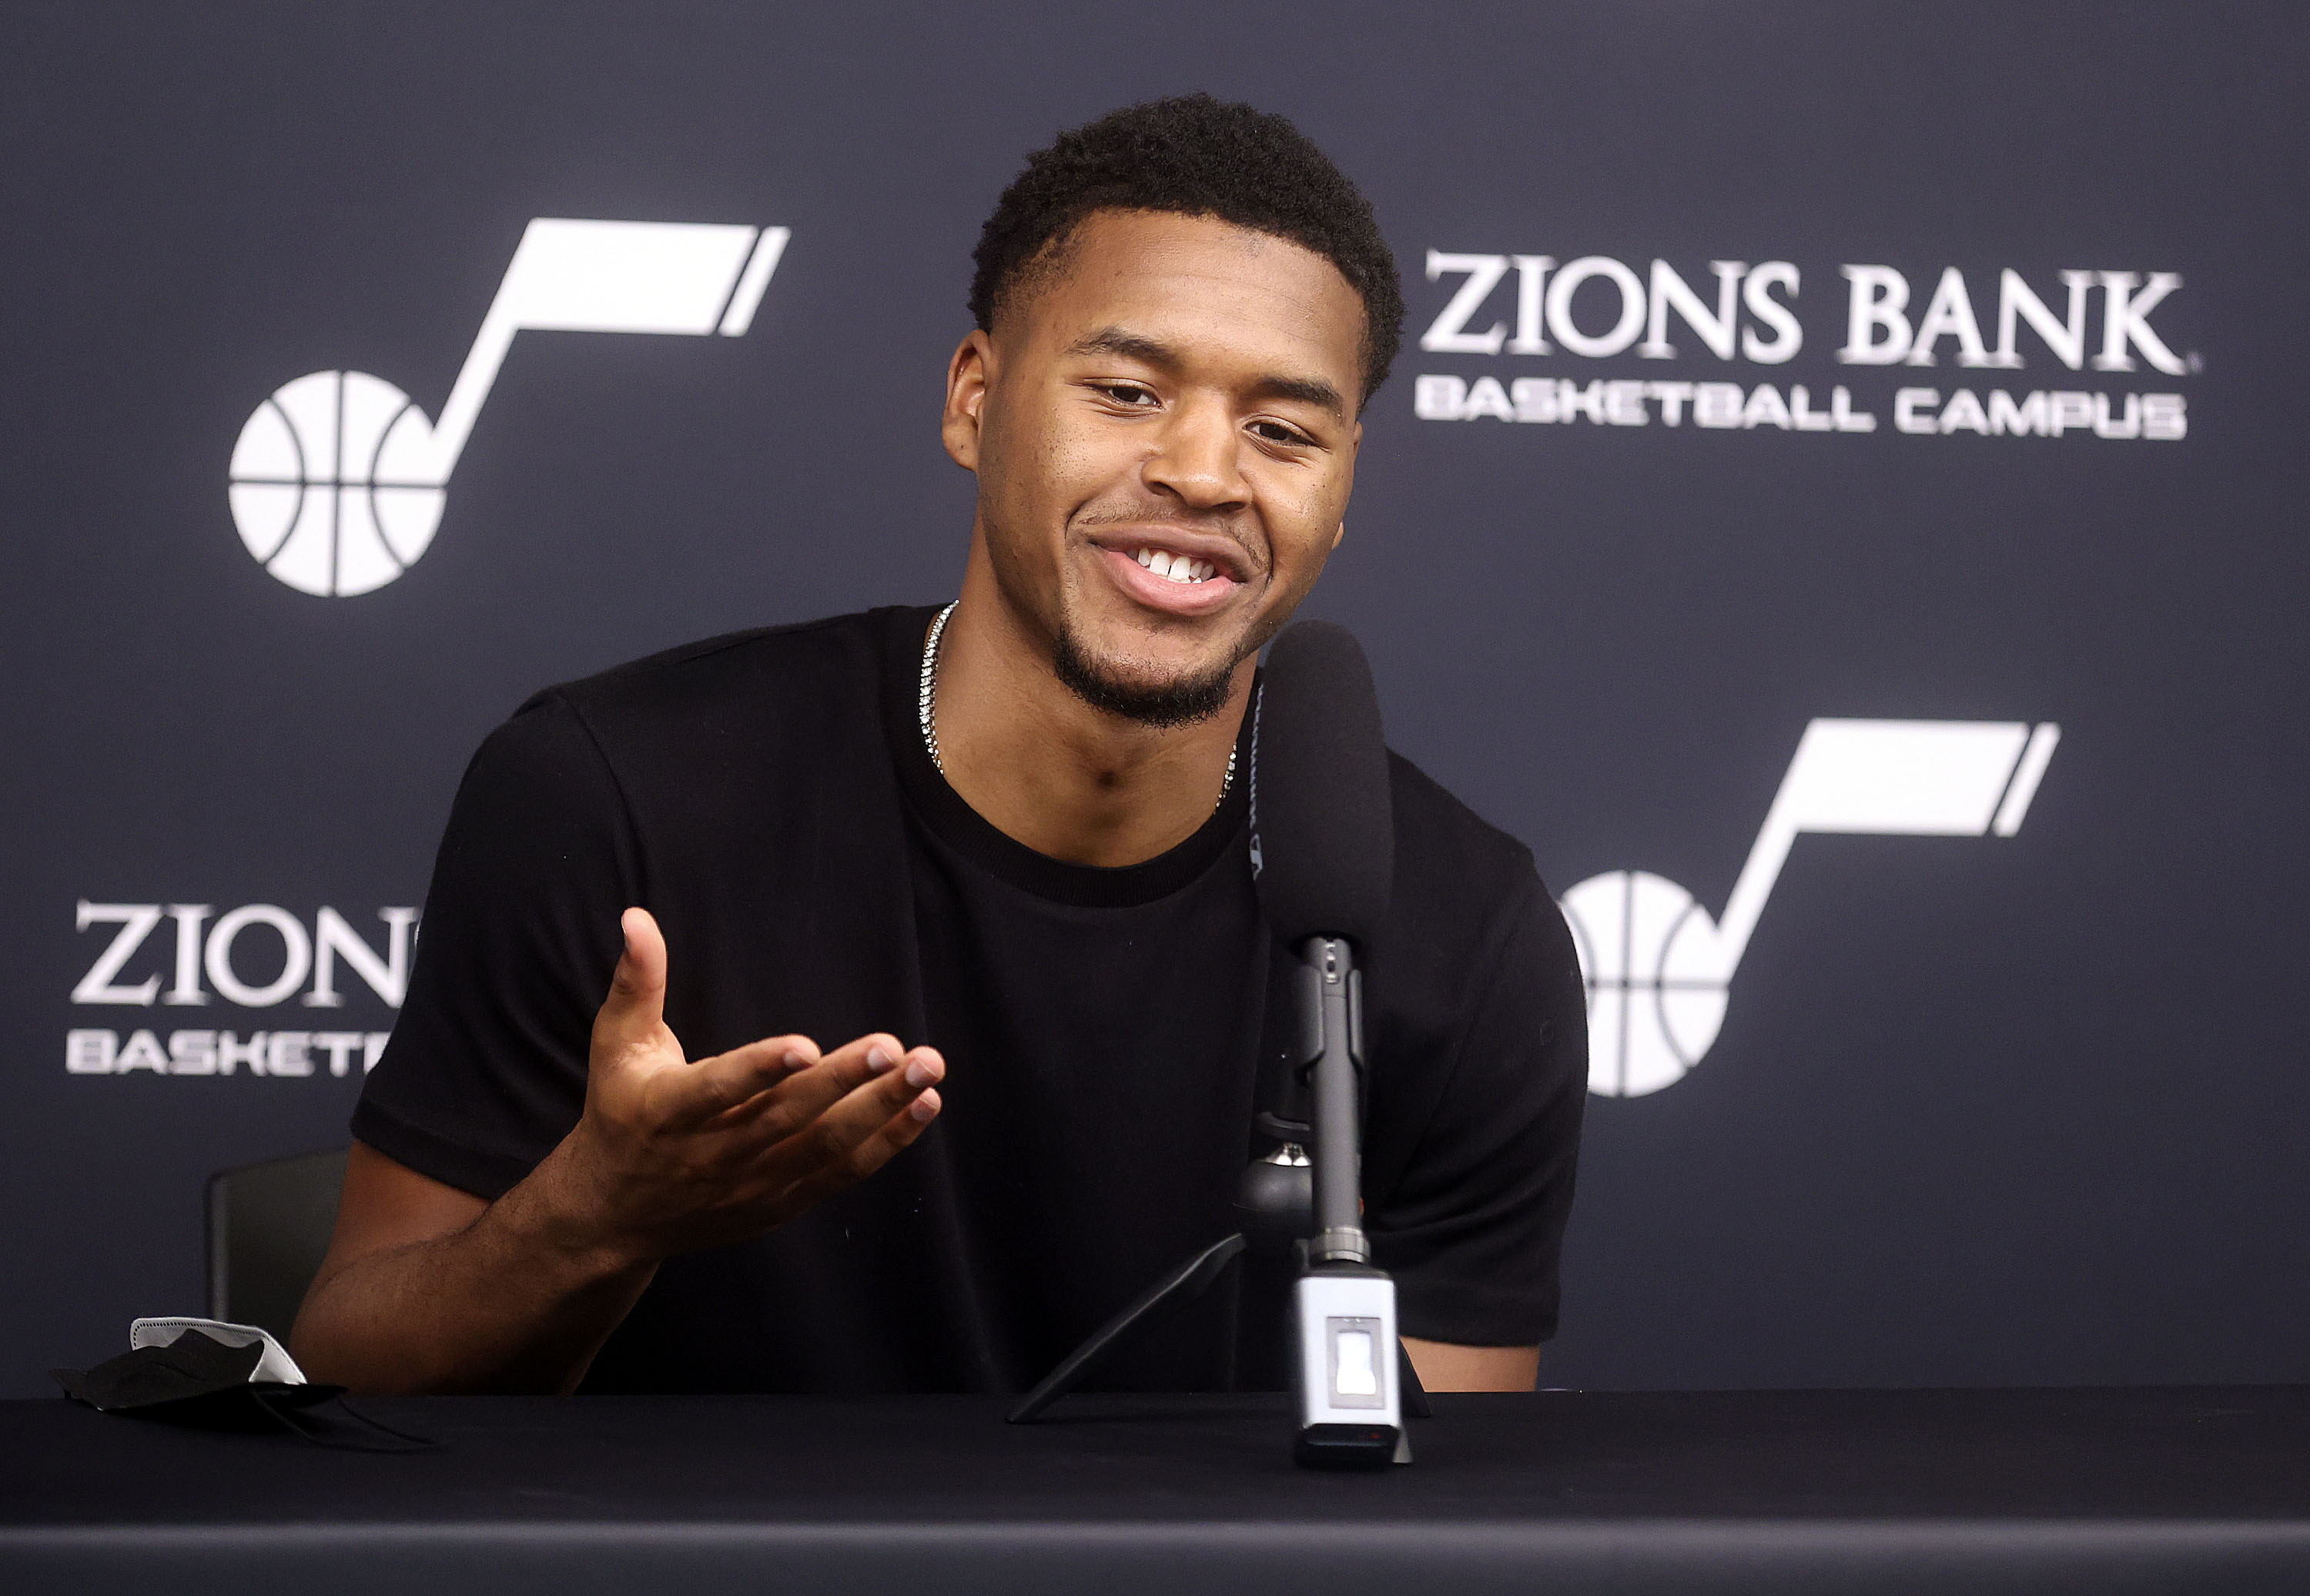 Utah Jazz guard Jared Butler speaks during a press conference at the Zions Bank Basketball Campus in Salt Lake City